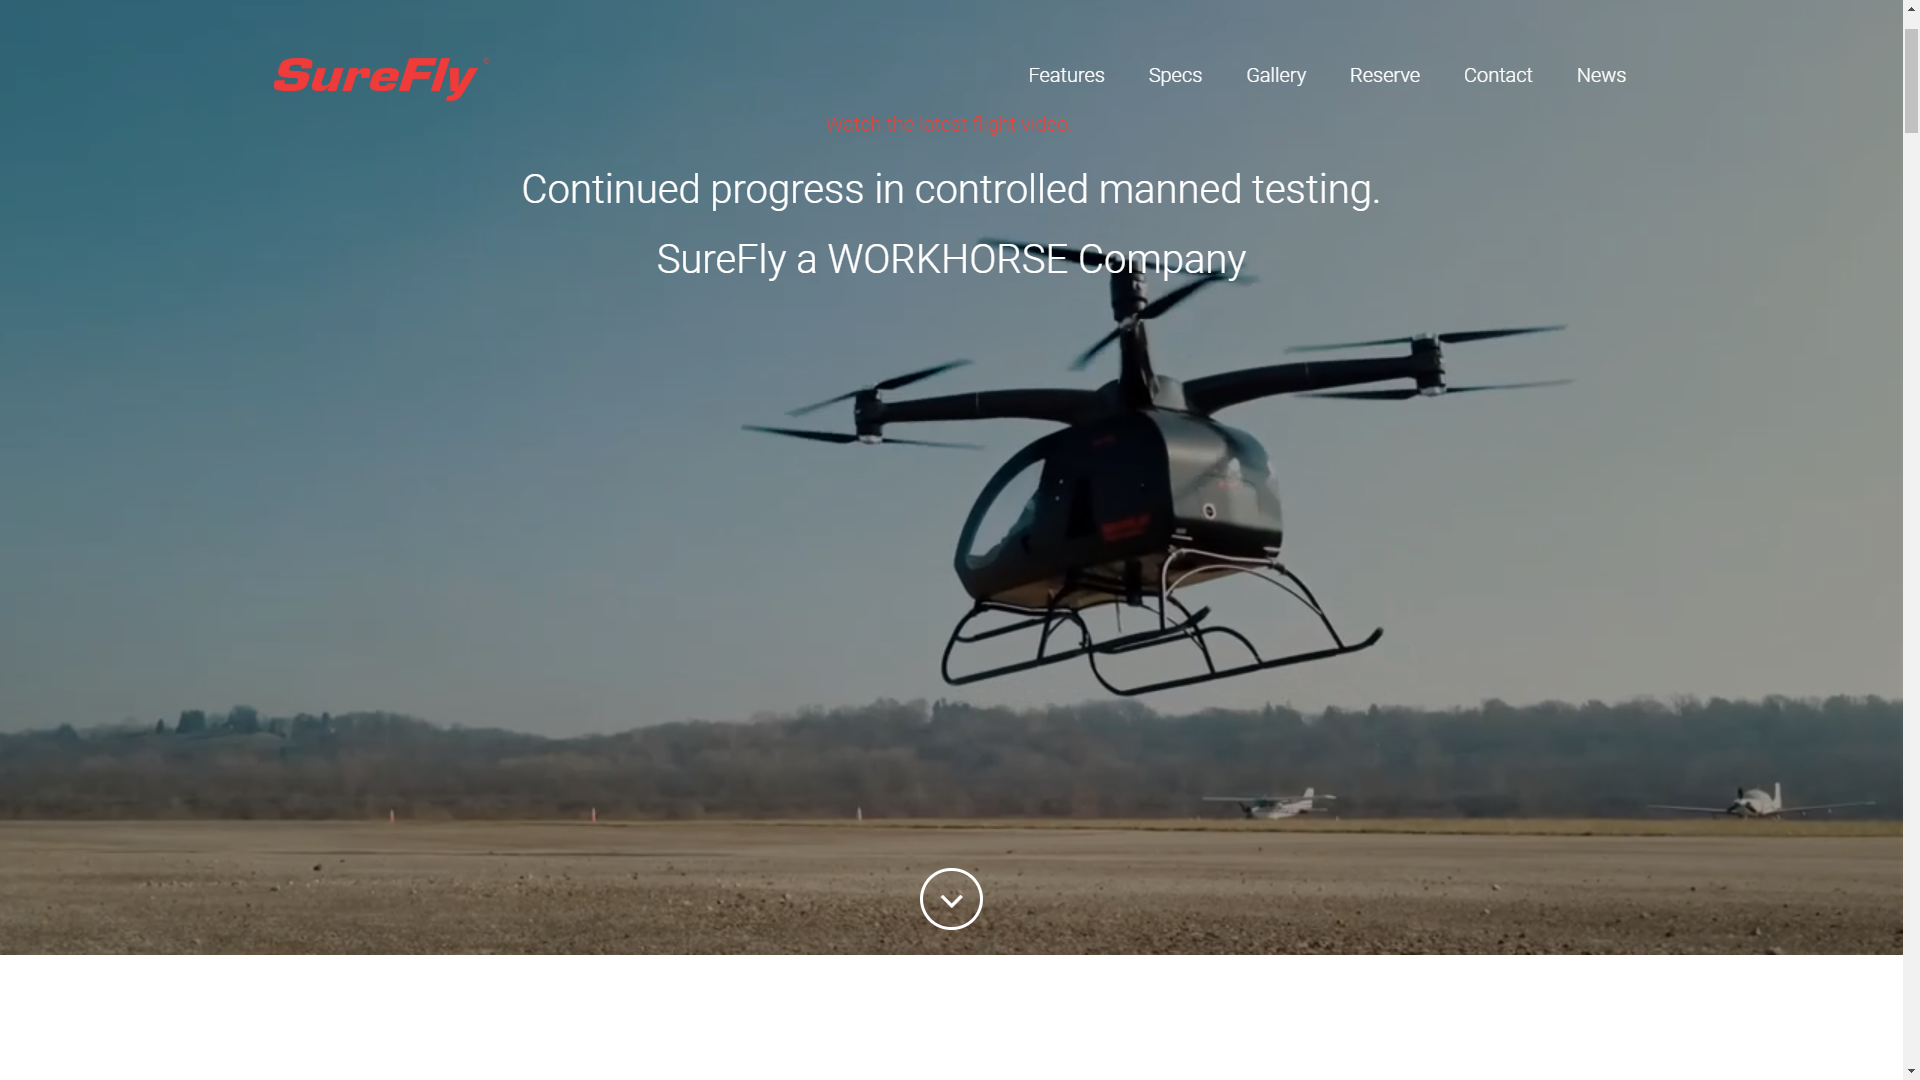 The Morning Brew Show - Workhorse SureFly